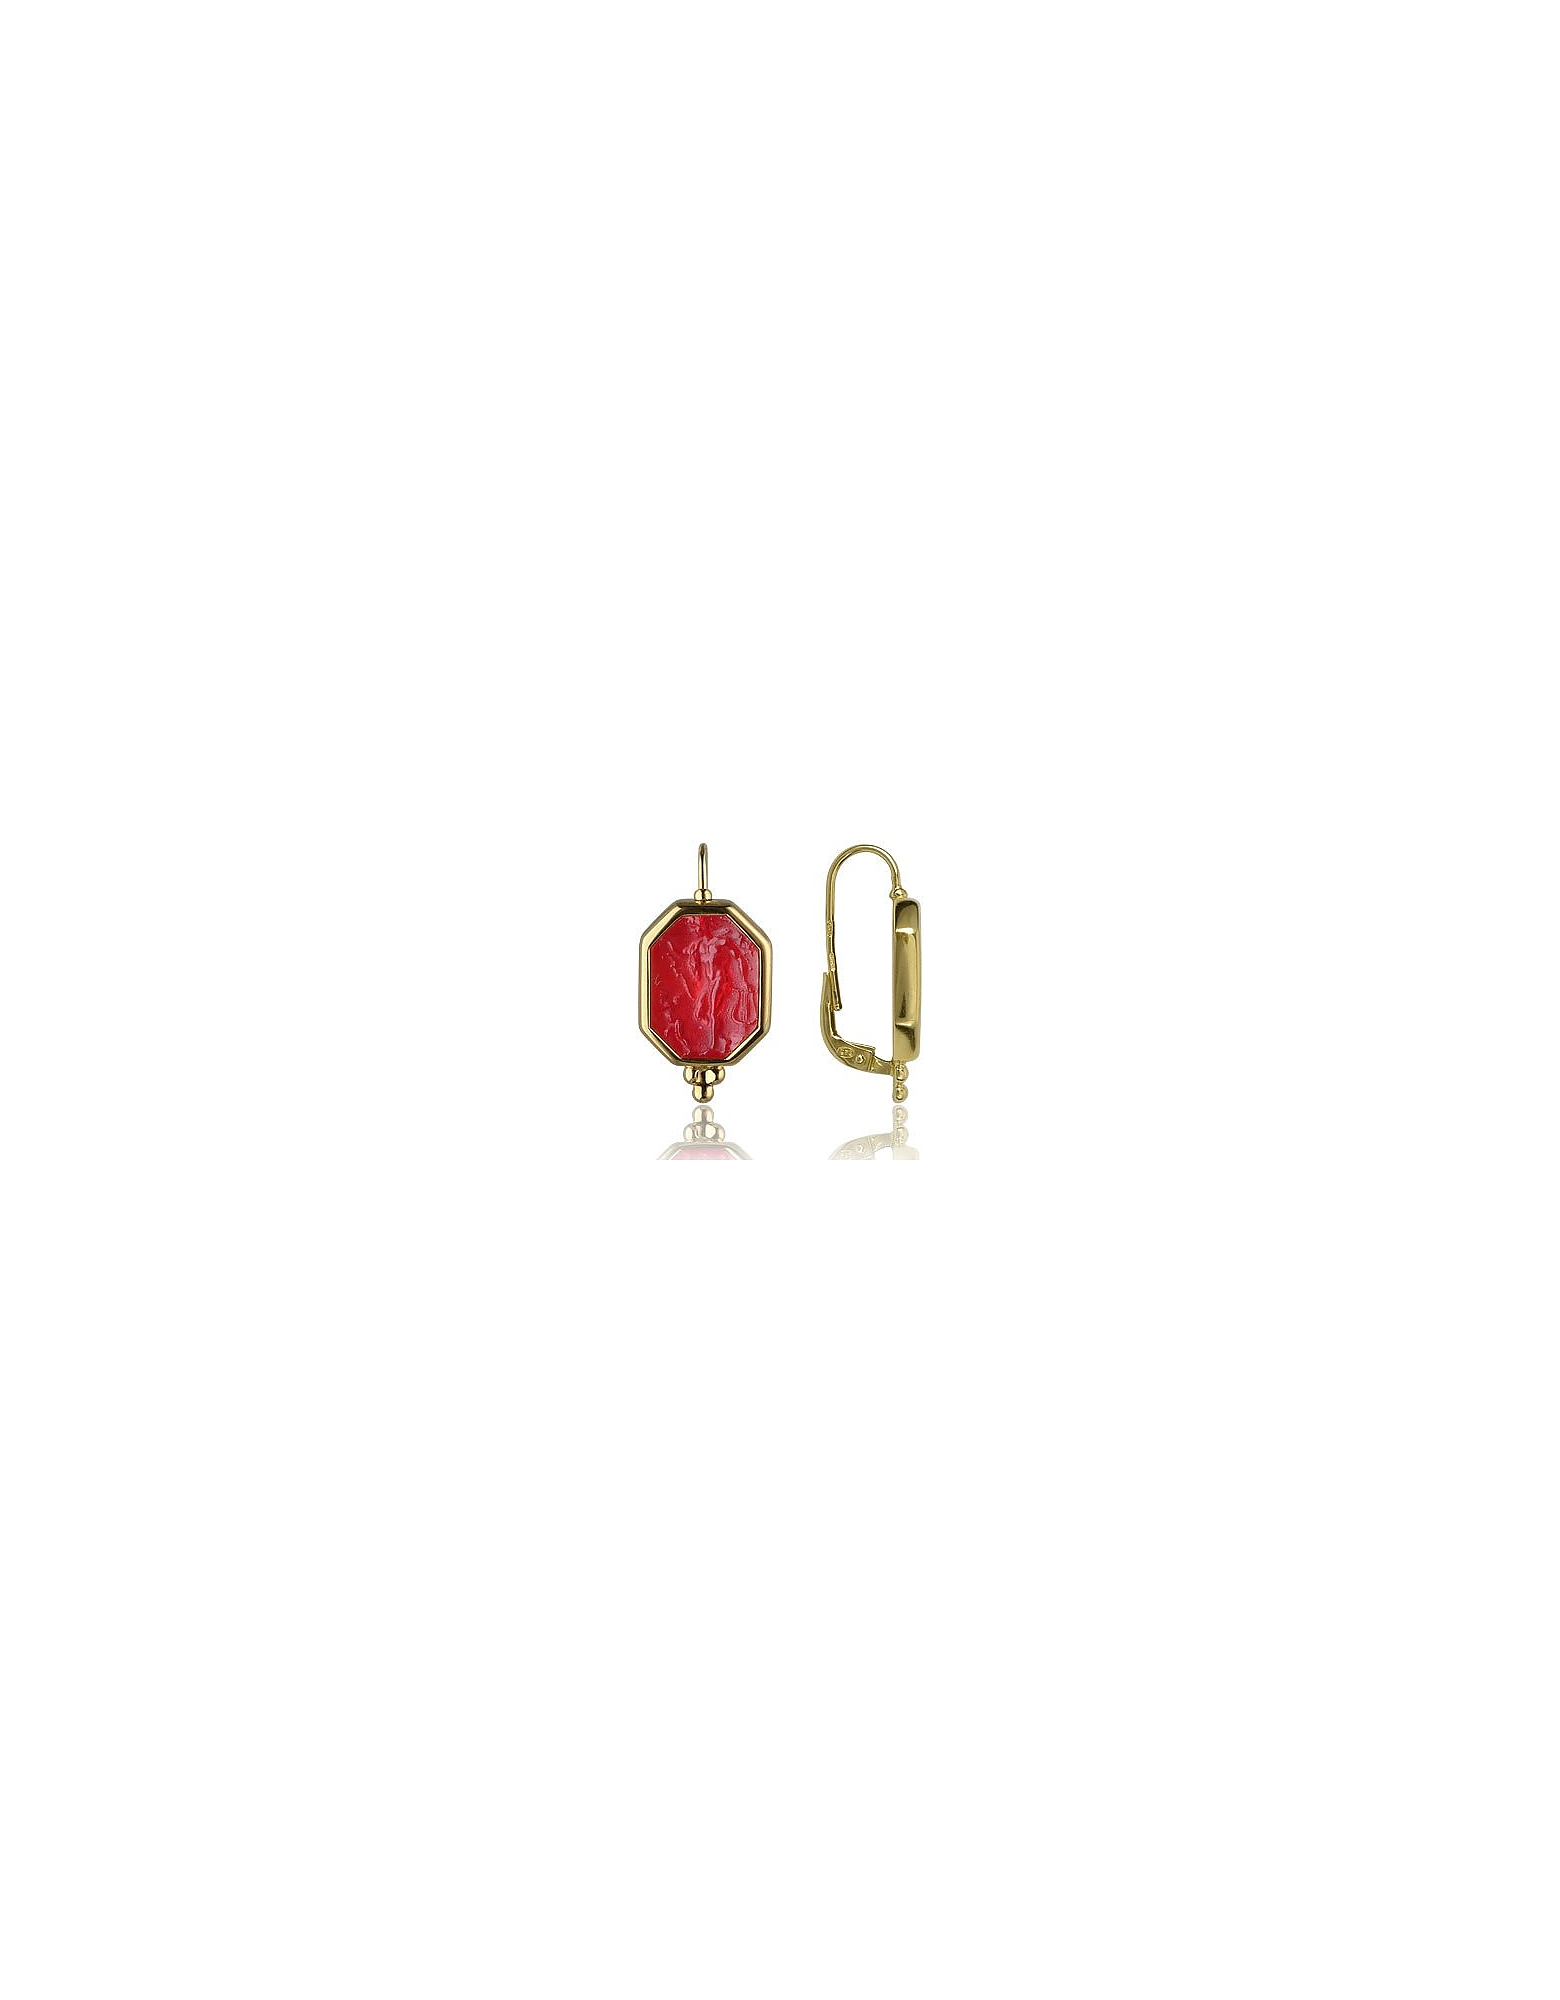 Tagliamonte Earrings, Classics Collection - Red 18K Gold Drop Earrings